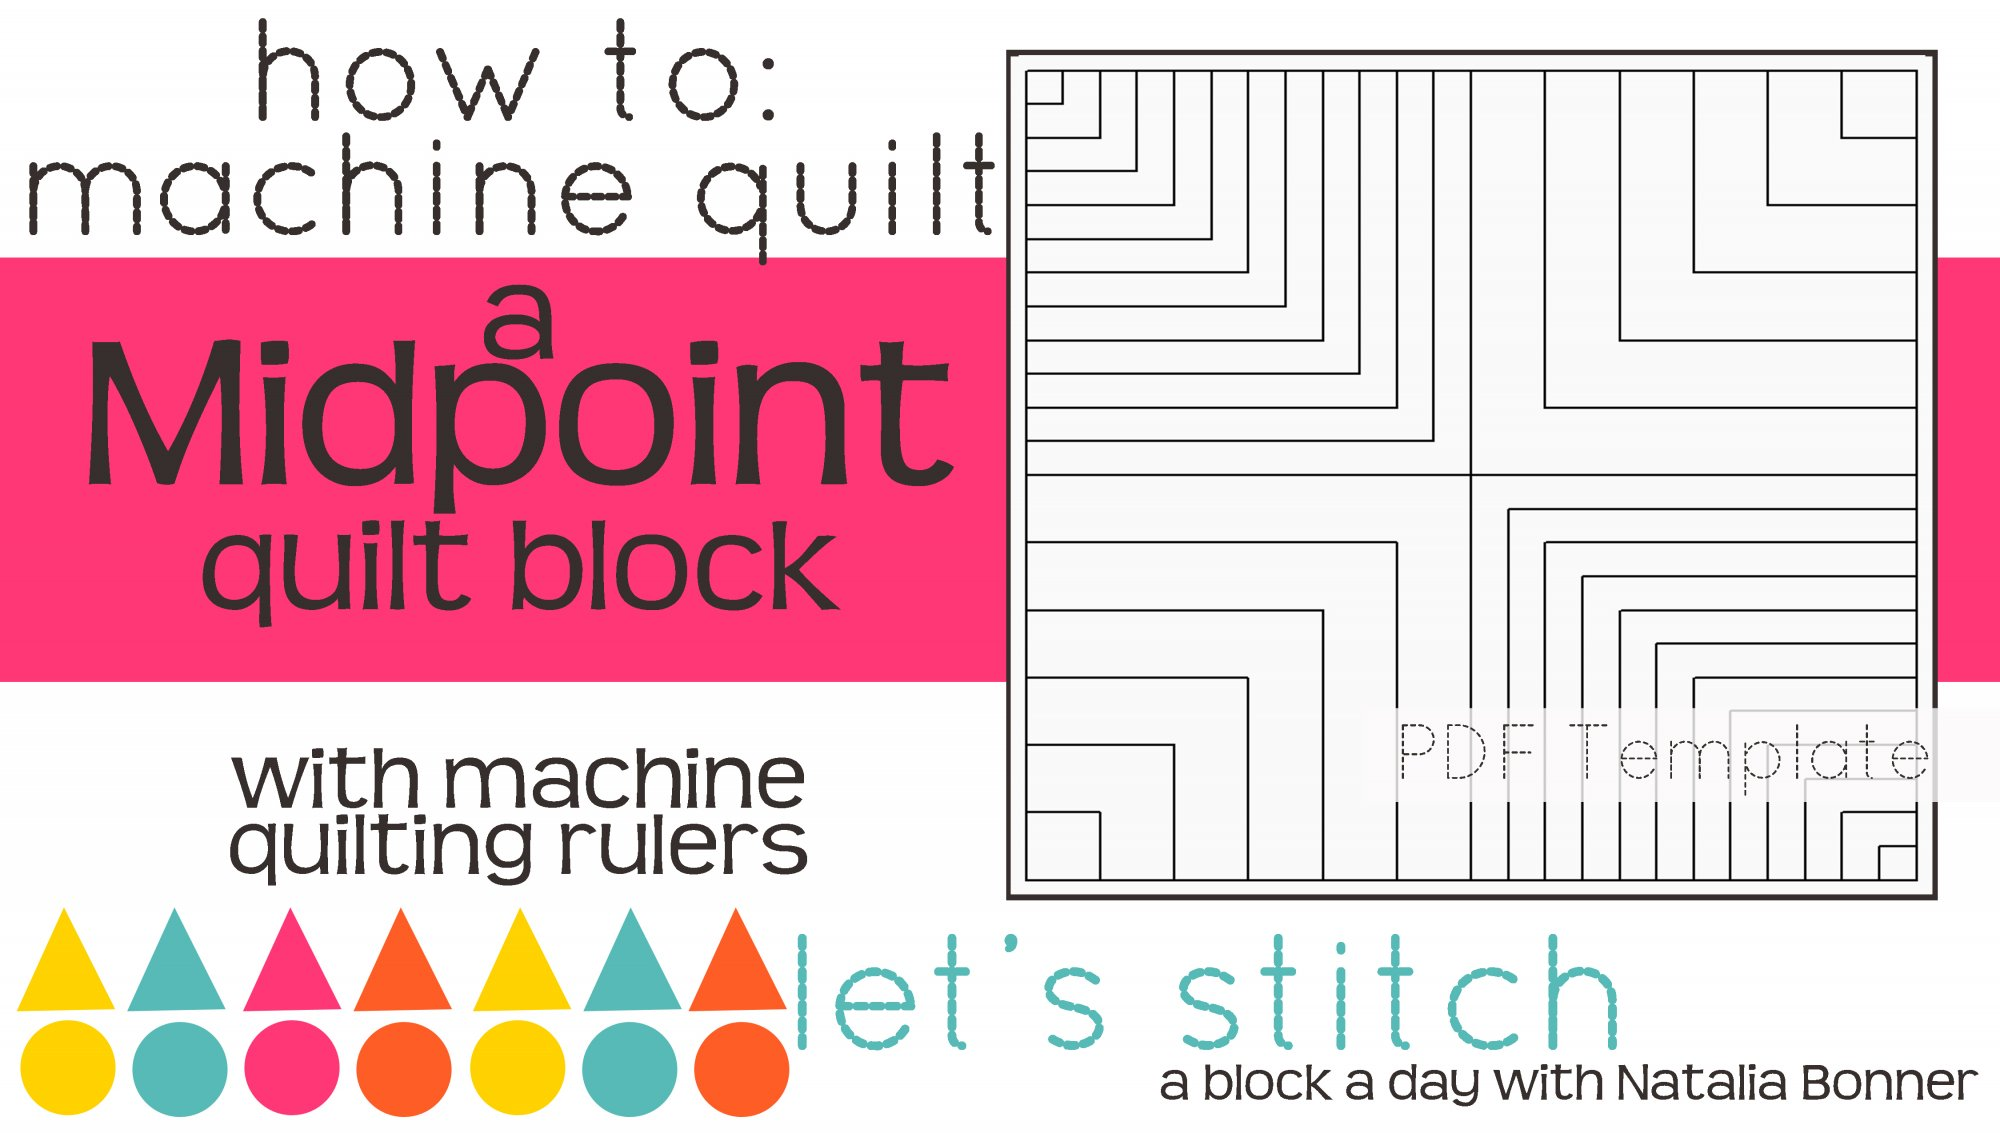 Let's Stitch - A Block a Day With Natalia Bonner - PDF - Midpoint